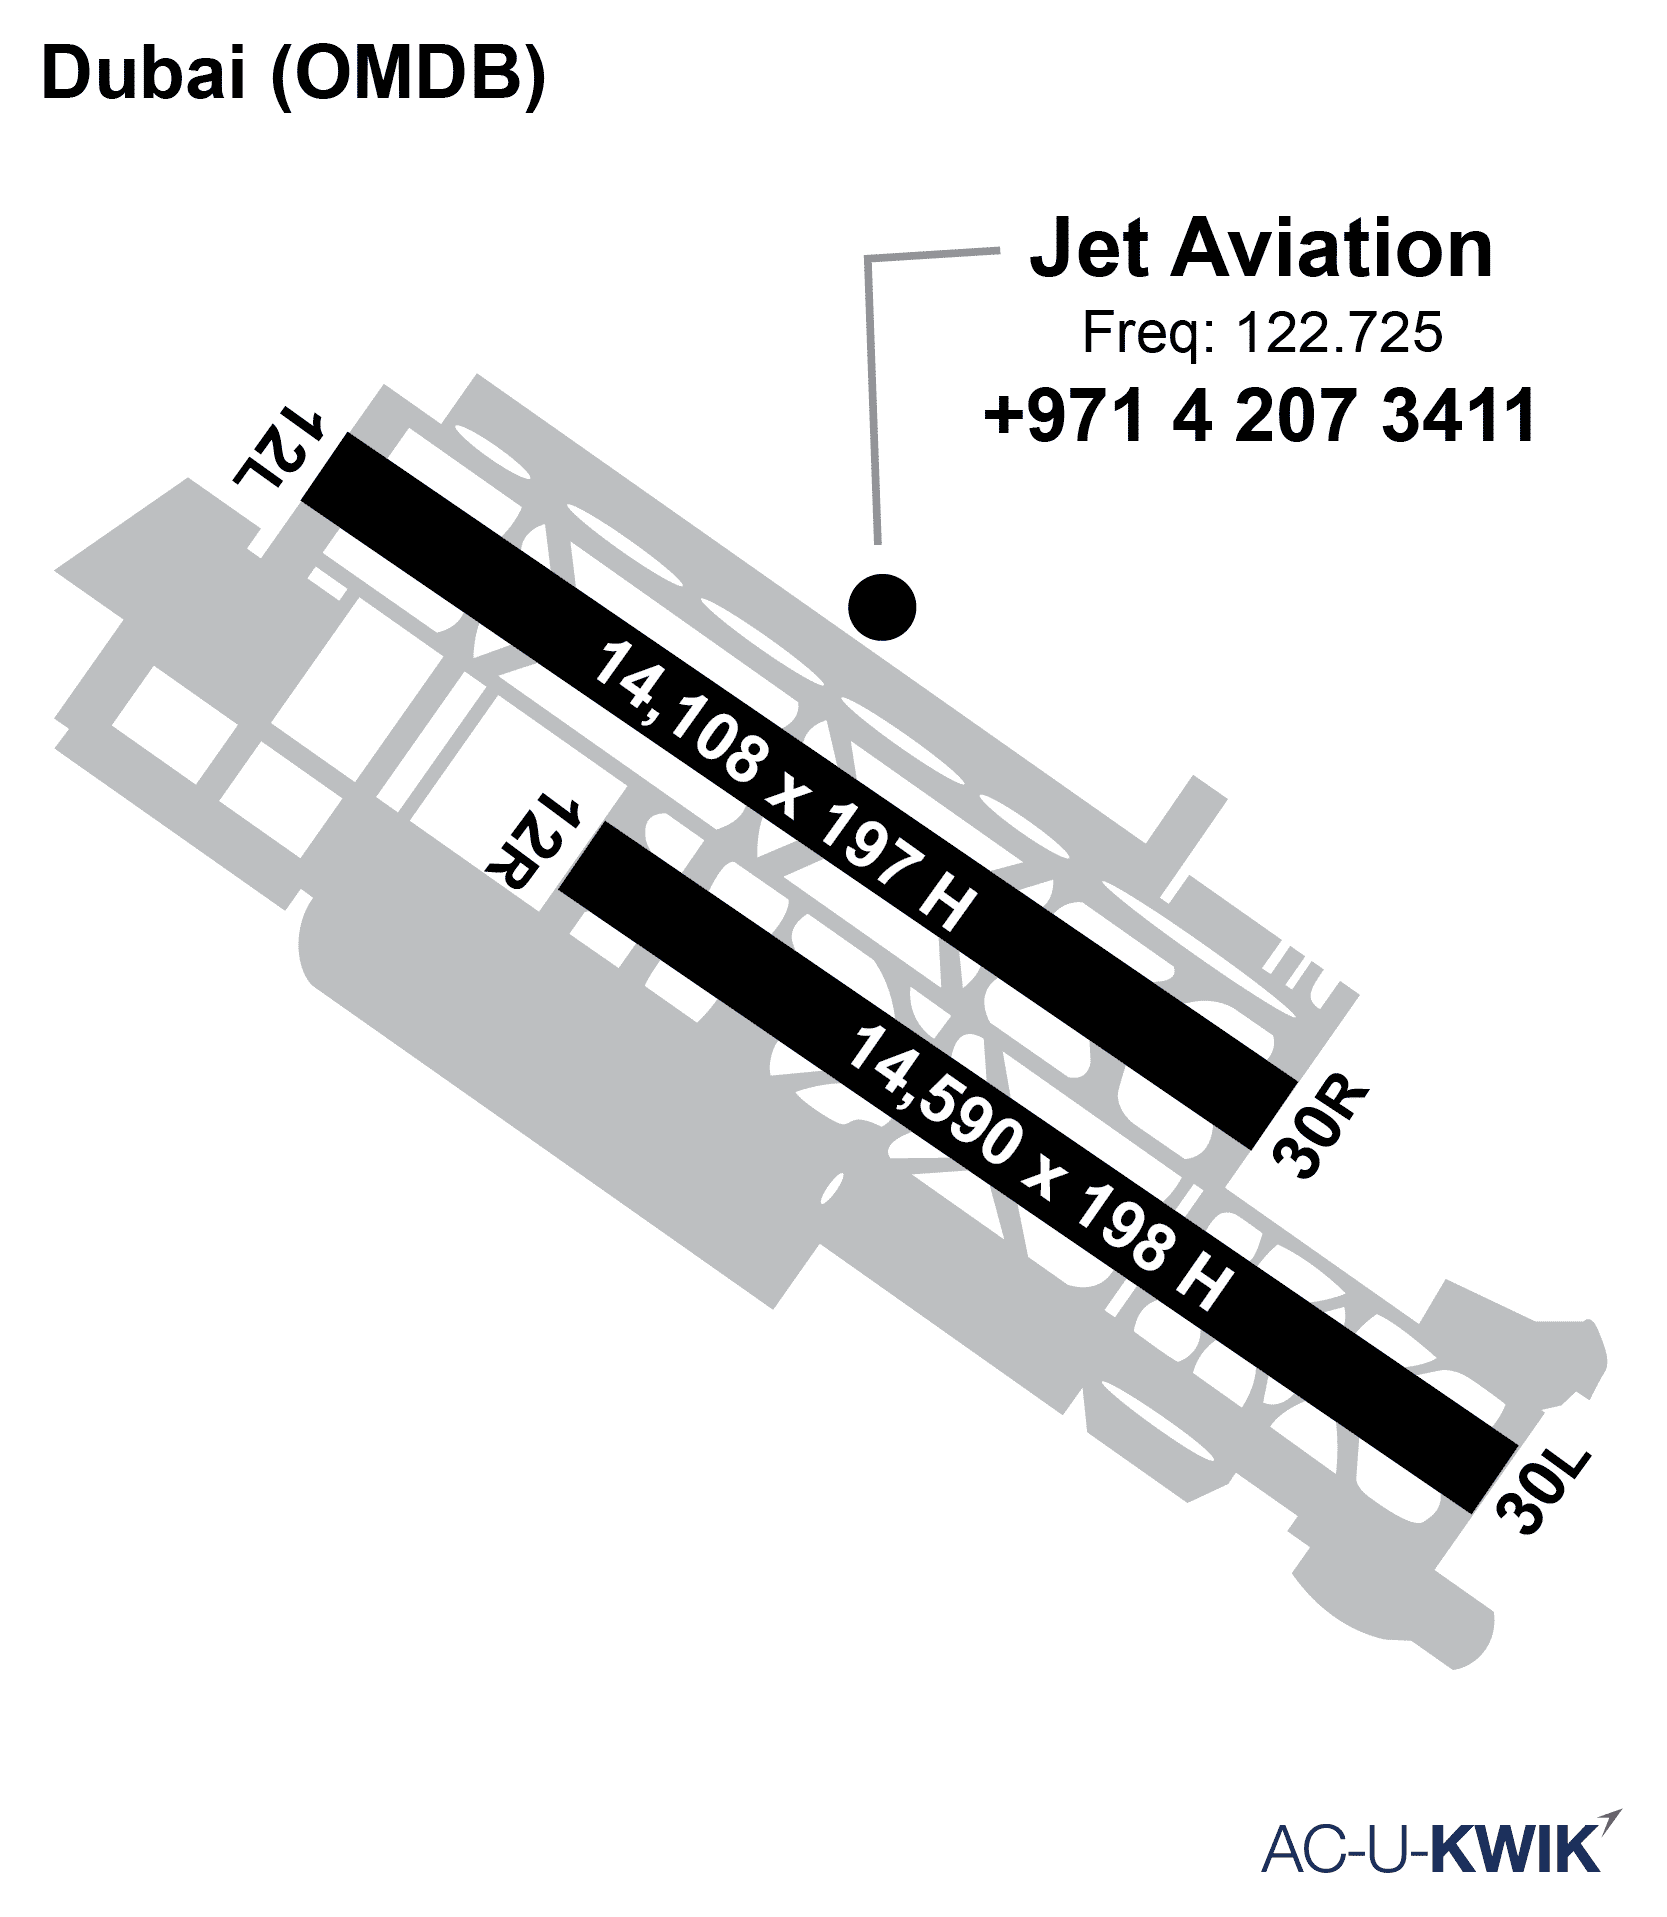 Jet Aviation – Dubai AC-U-KWIK Map